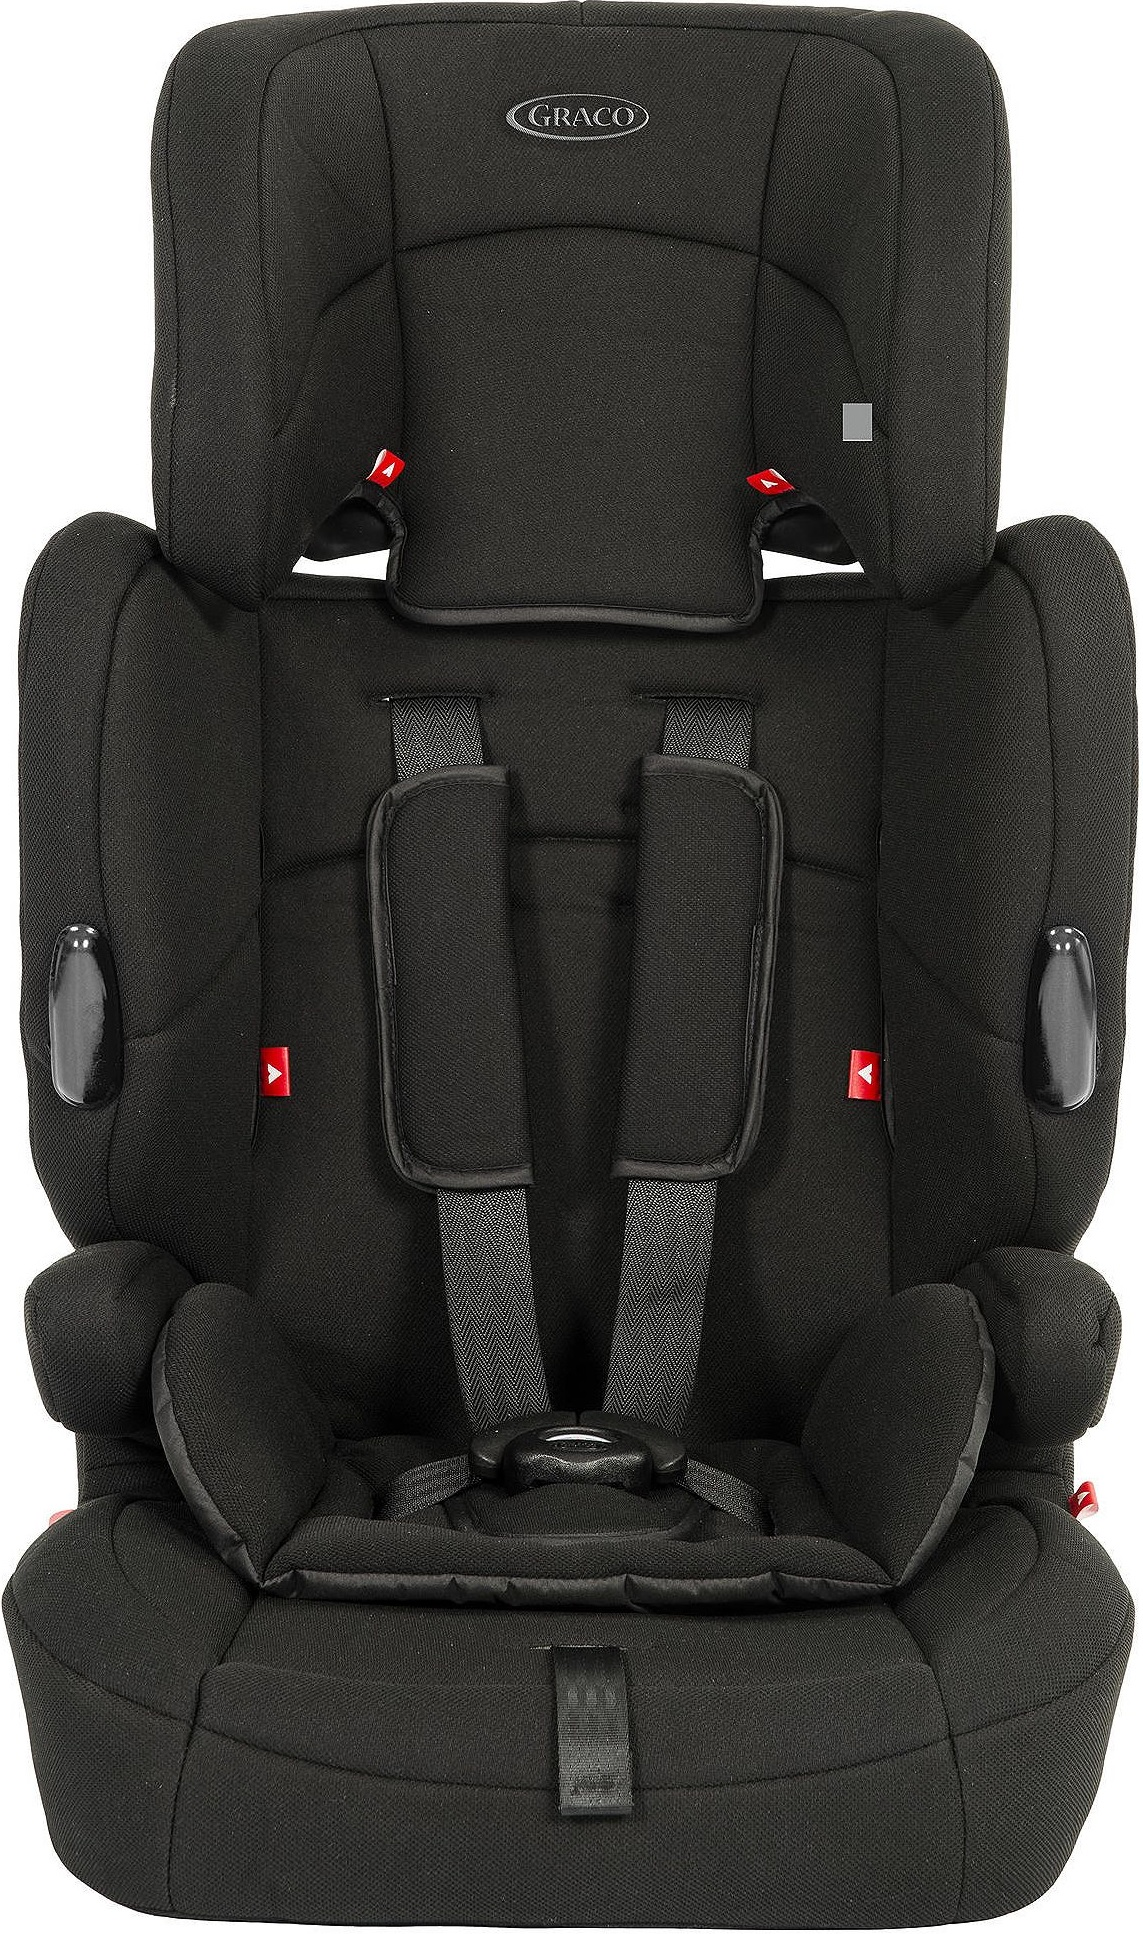 3459959b66ee Details about Graco Endure Group 1-2-3 High Back Booster Car Seat with  Harness - Black A